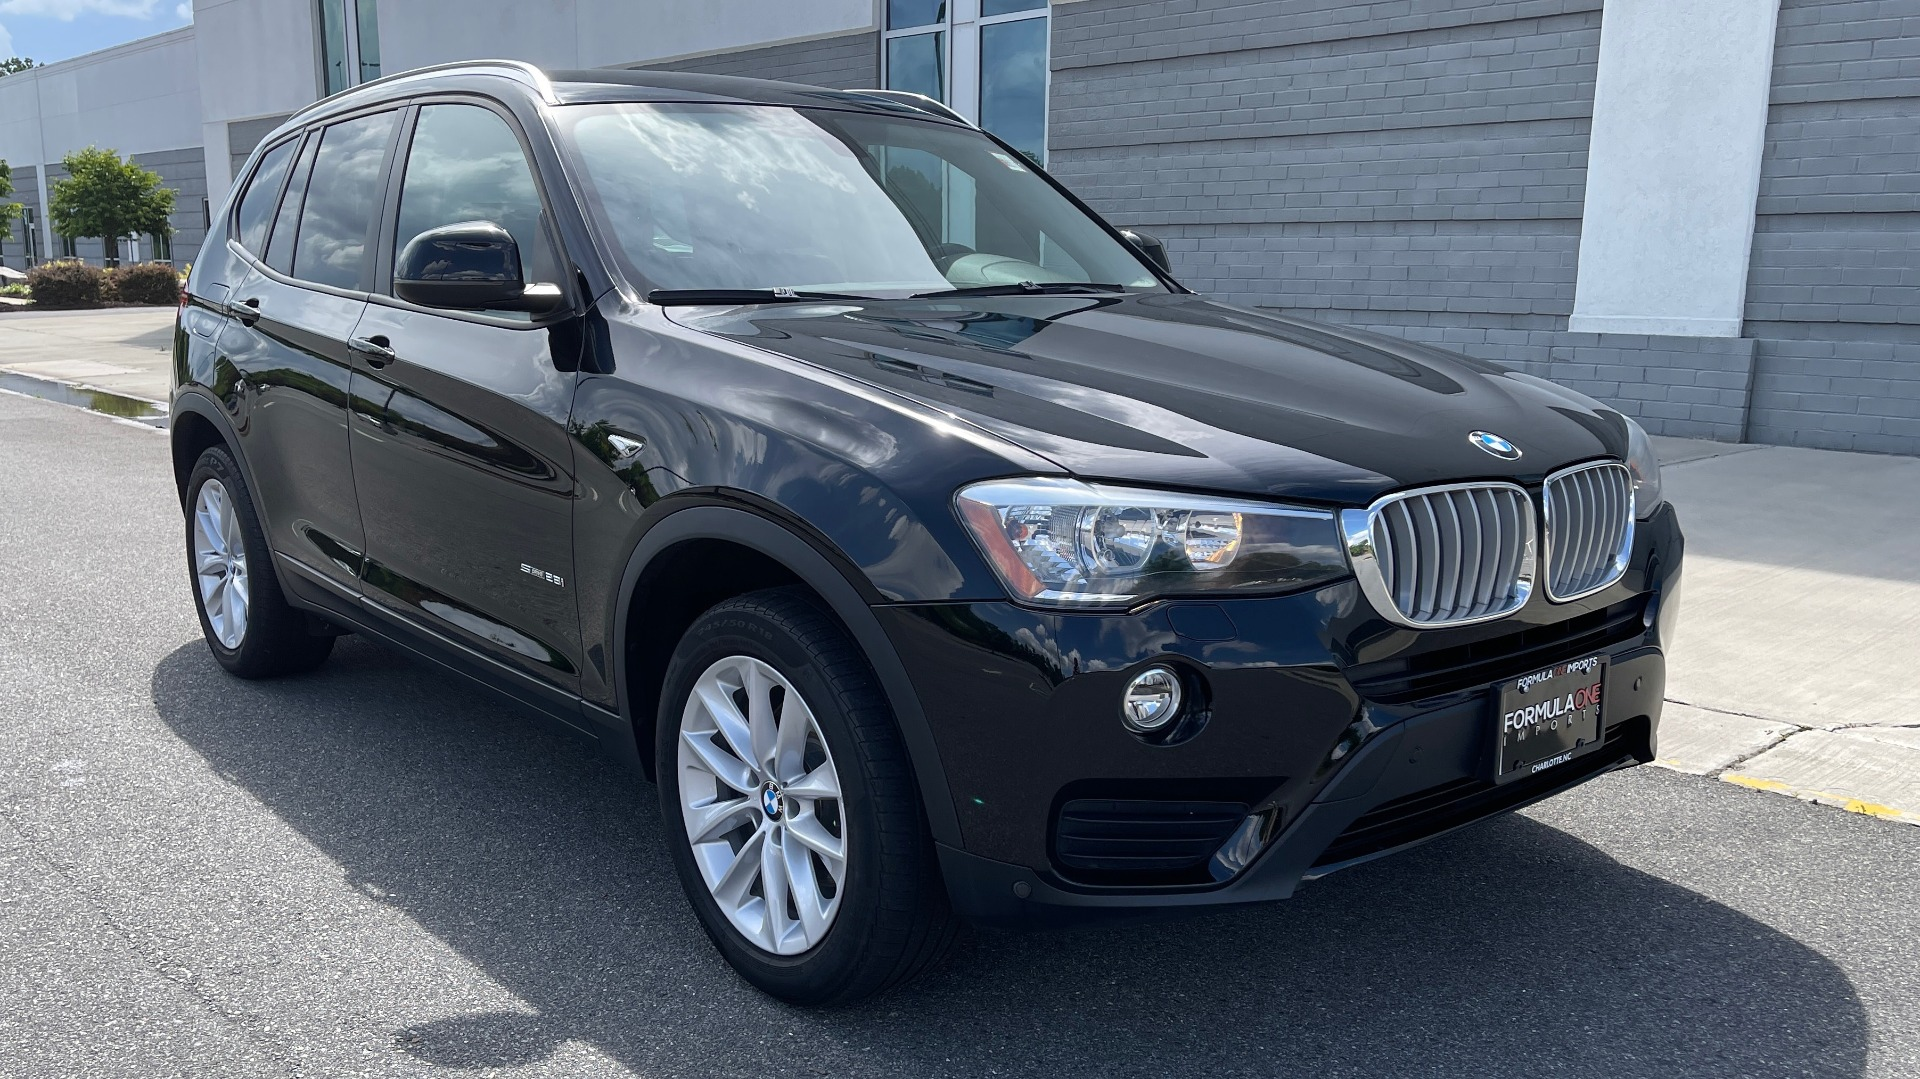 Used 2017 BMW X3 SDRIVE28I / DRVR ASST PKG / HTD STS / REARVIEW / 18IN WHEELS for sale $24,995 at Formula Imports in Charlotte NC 28227 5